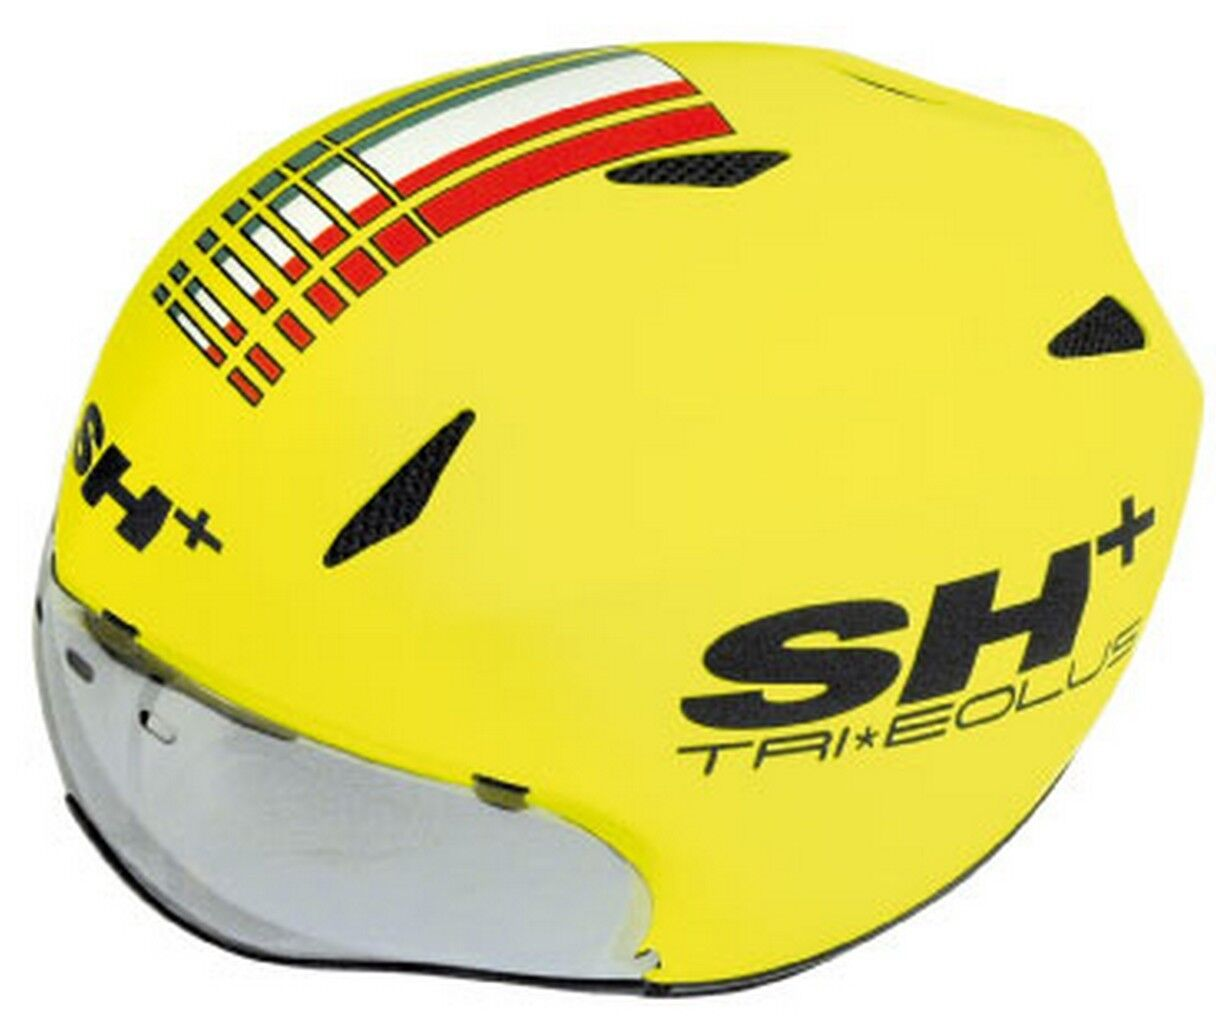 SH+ (ShPlus) Tri Eolus Triathlon Cycling Helmet (was   360) - Fluo Yellow  find your favorite here